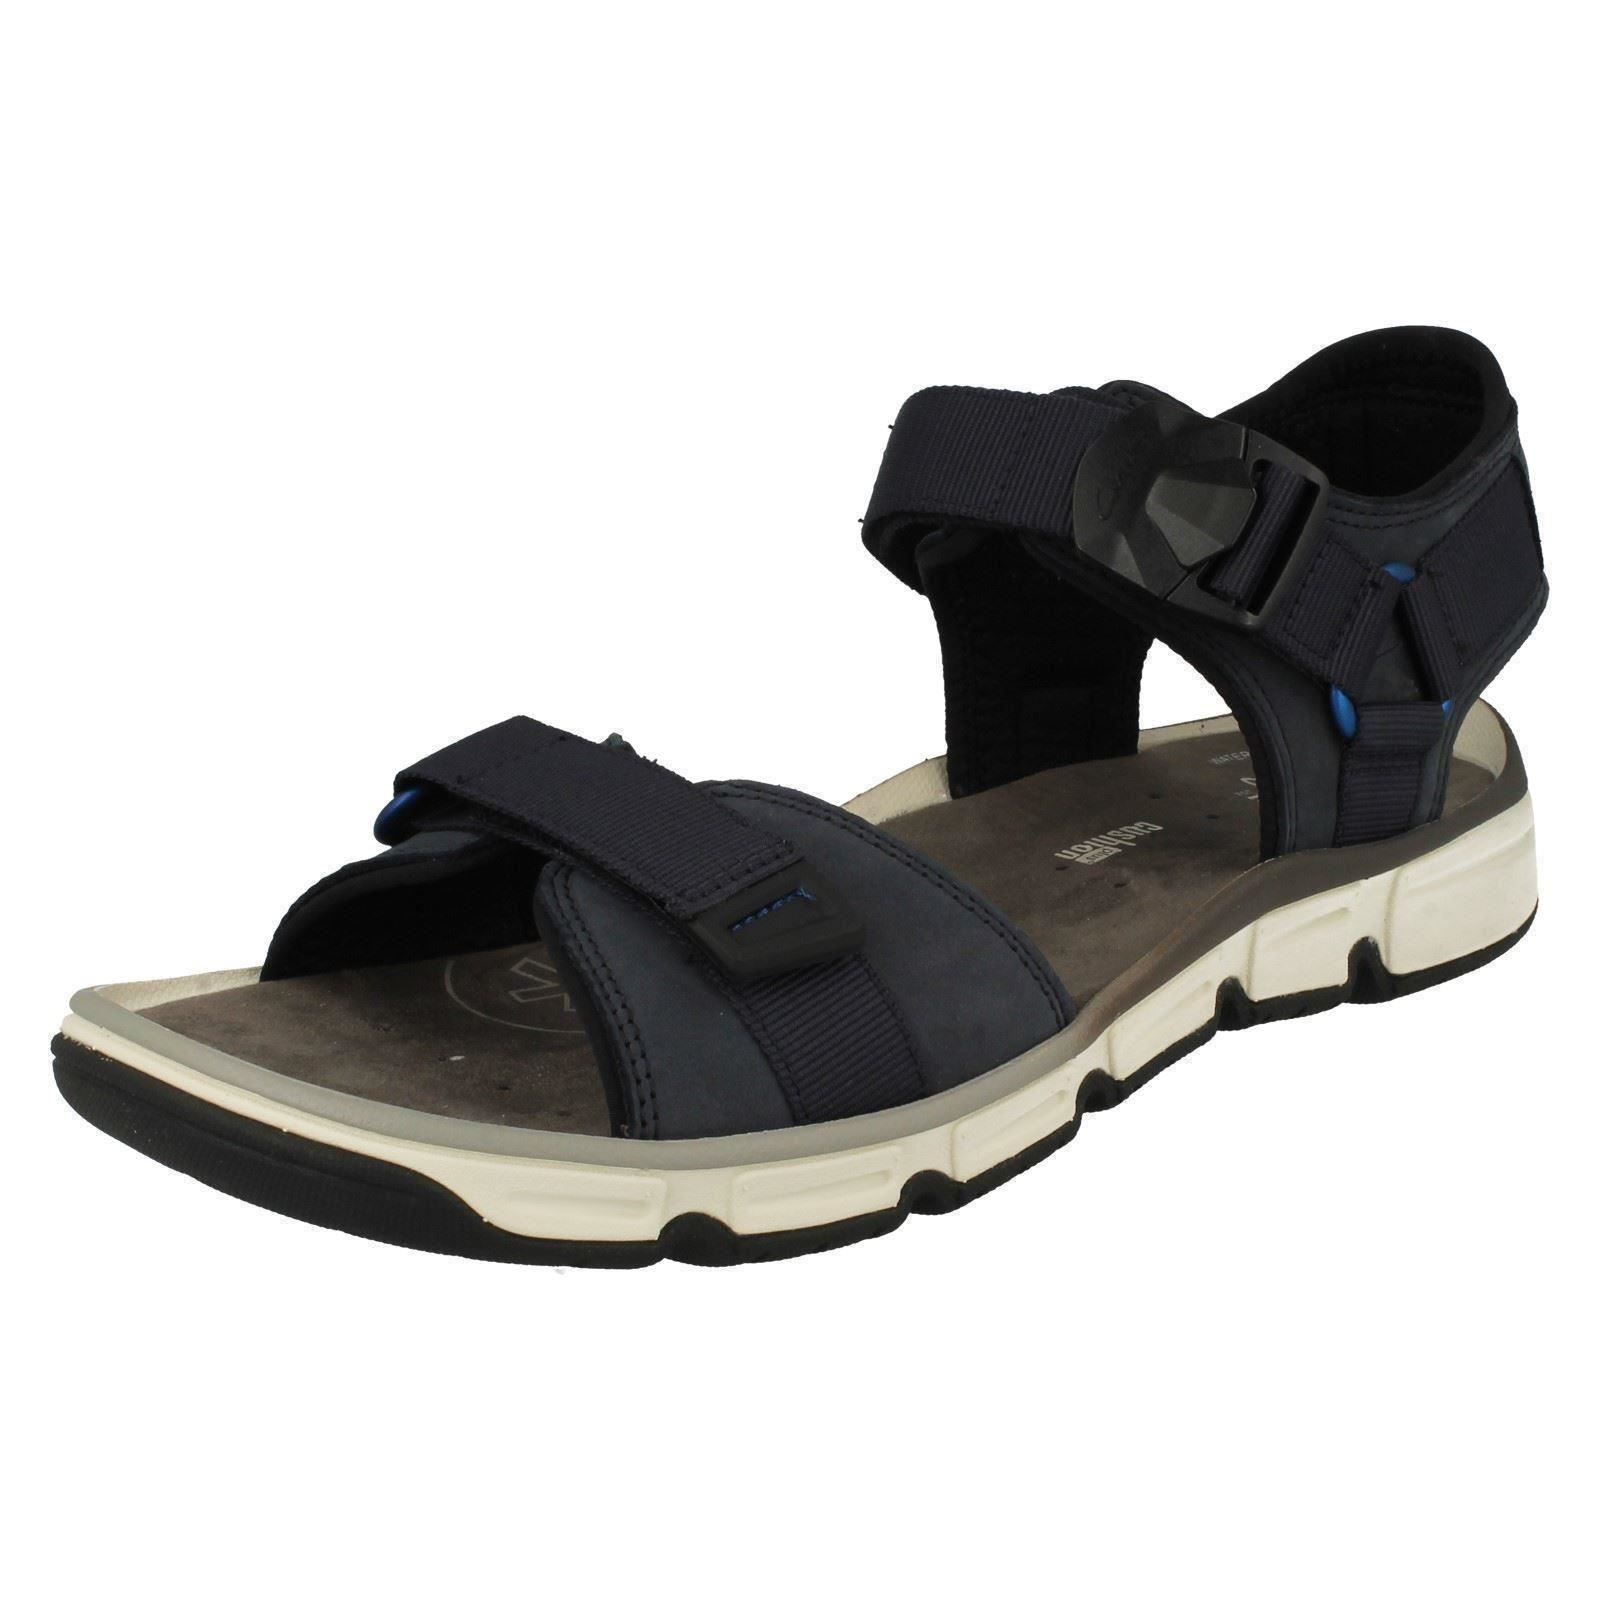 clarks active air sandals magnetic